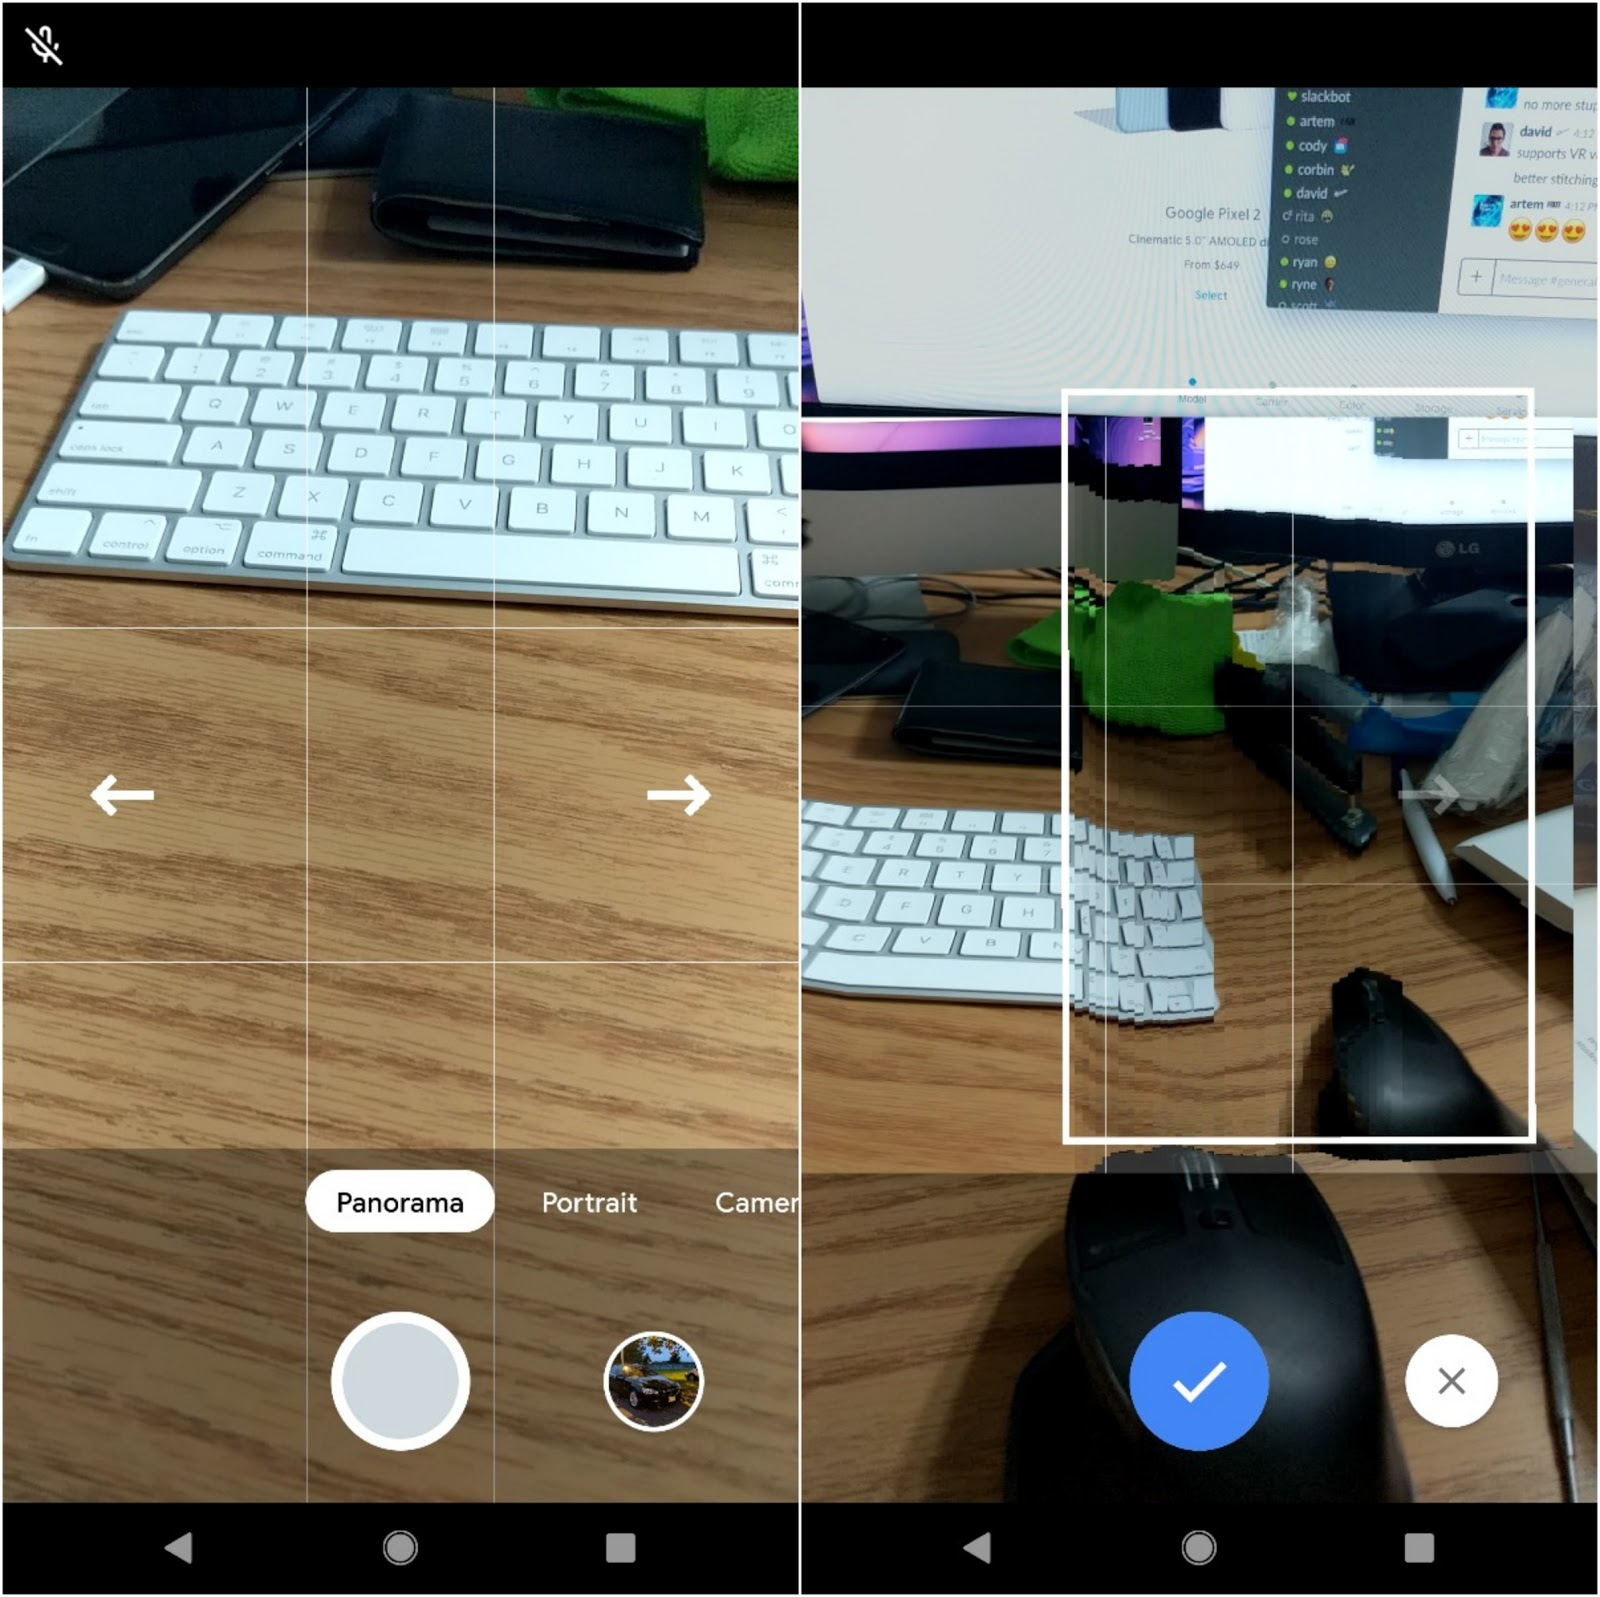 APK] Pixel 3's Google Camera Brings New UI, New Panorama Mode And